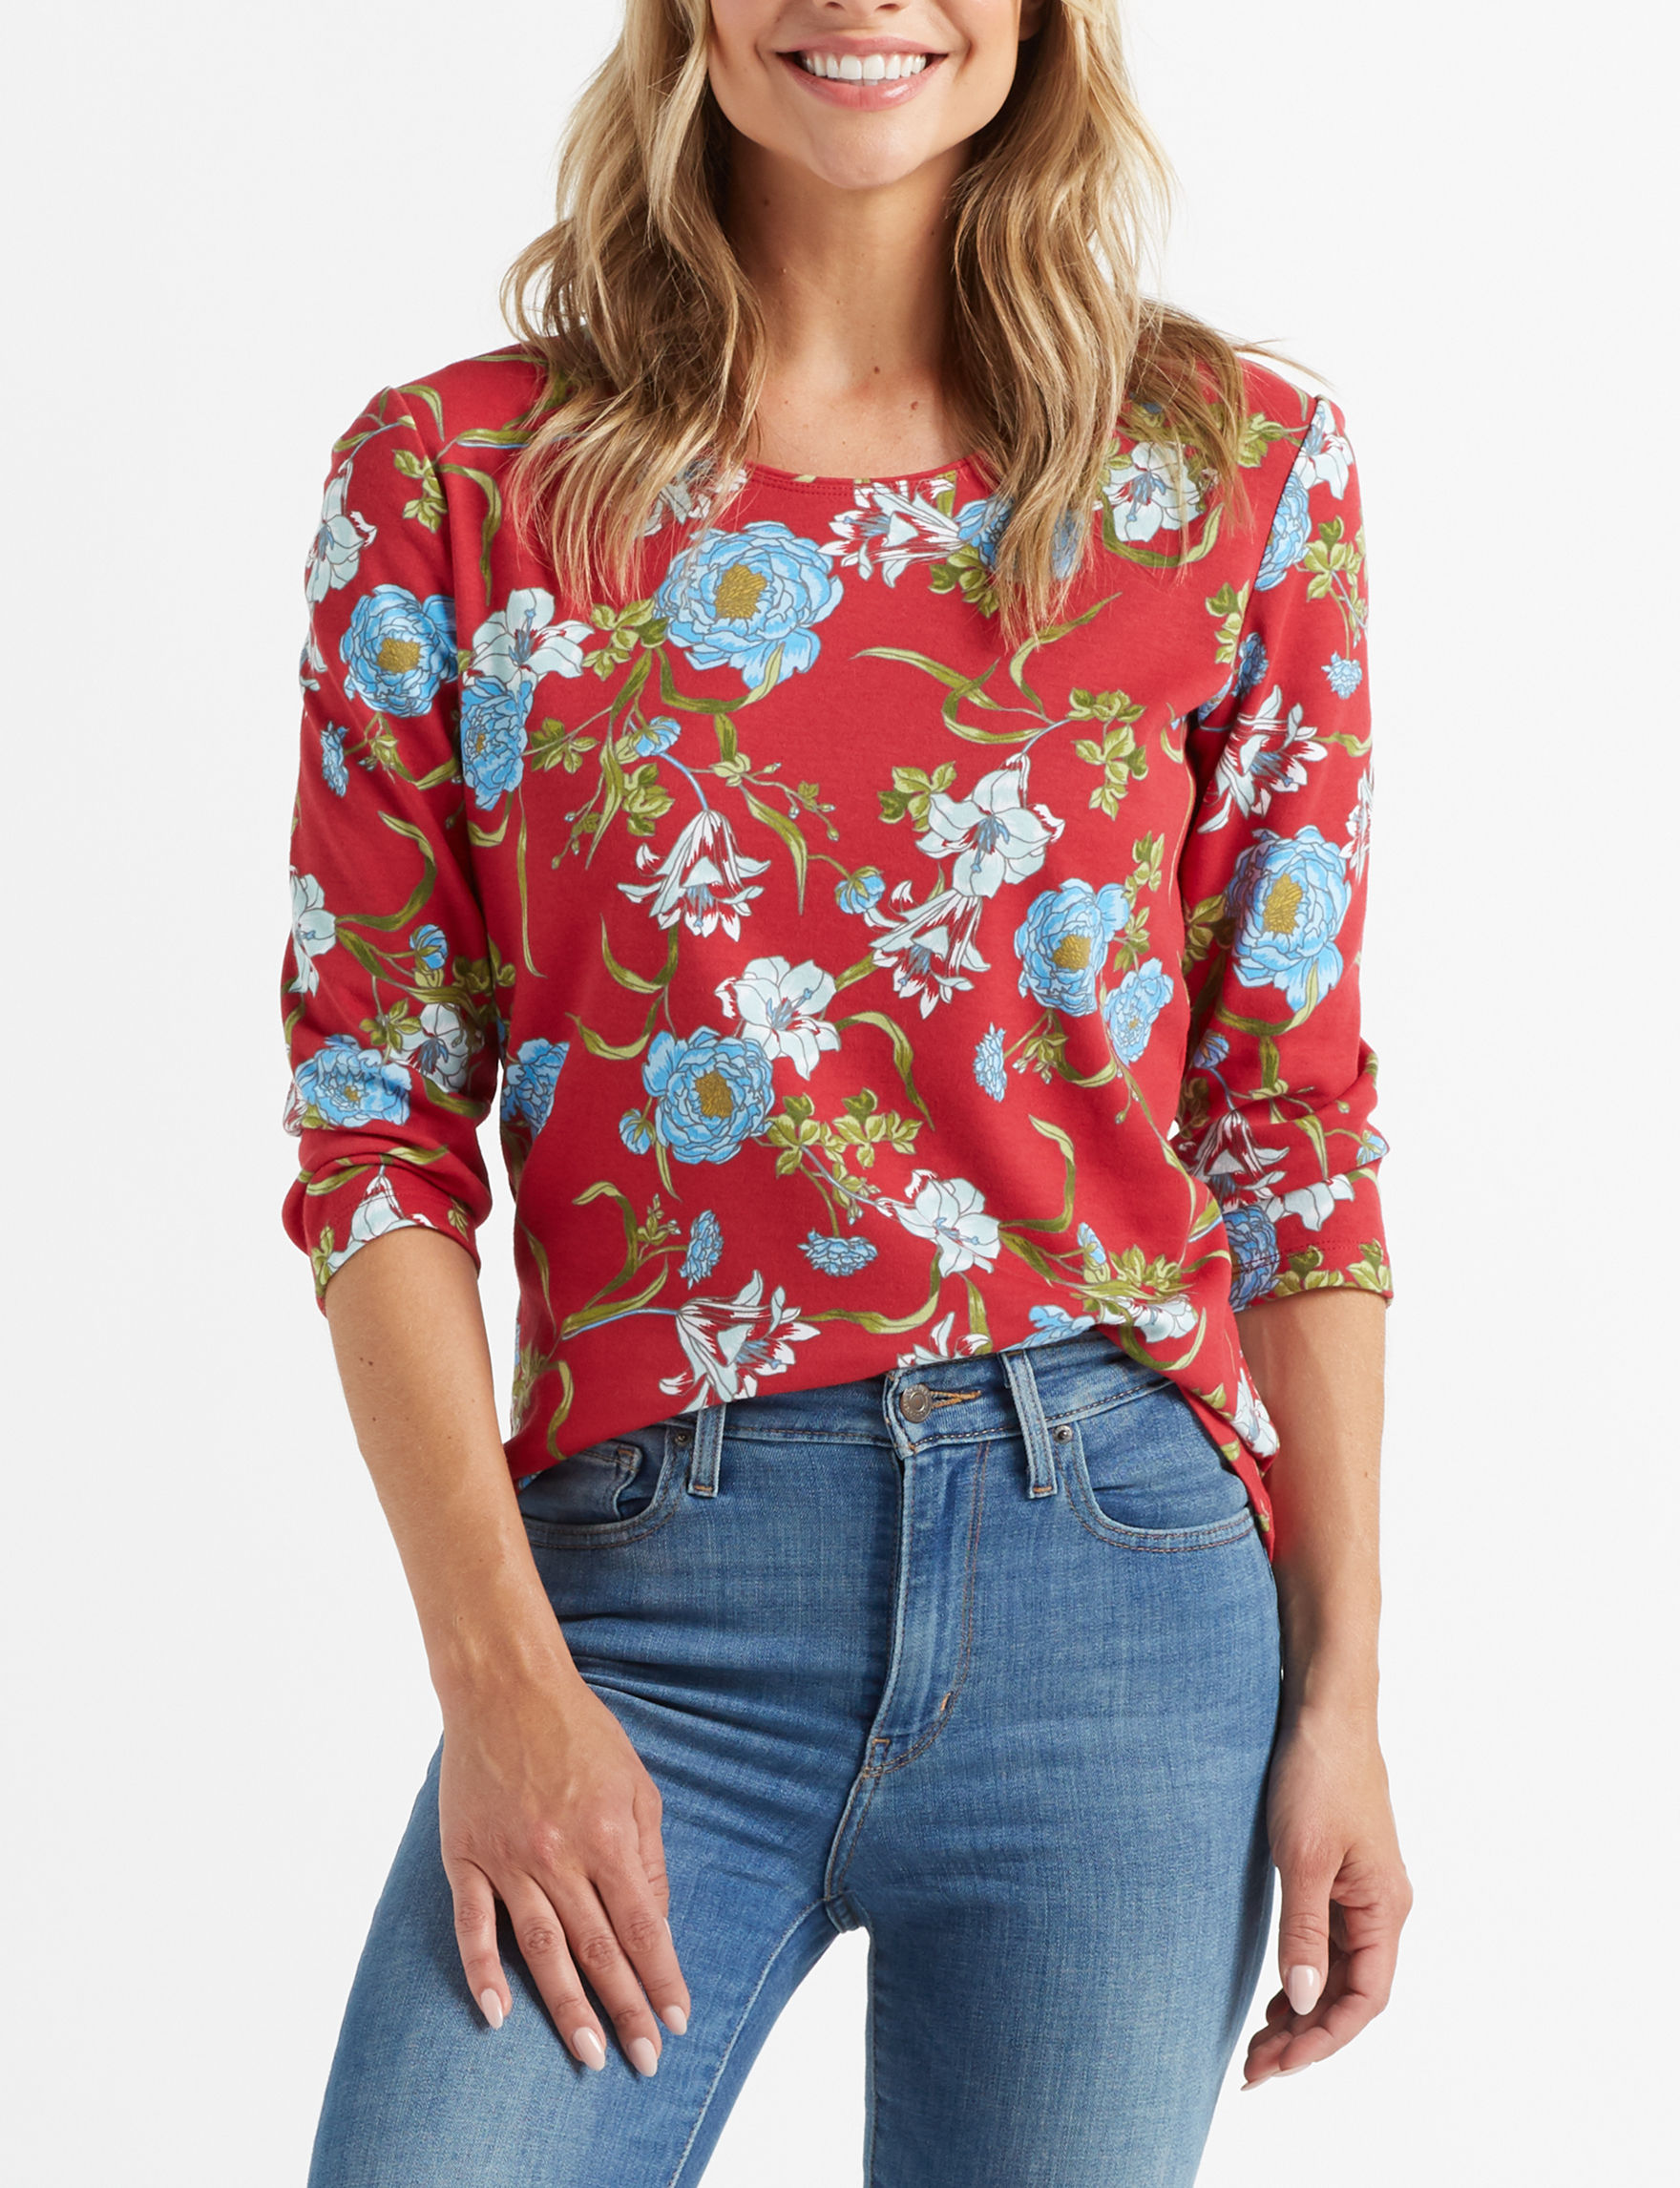 Rebecca Malone Red Shirts & Blouses Tees & Tanks